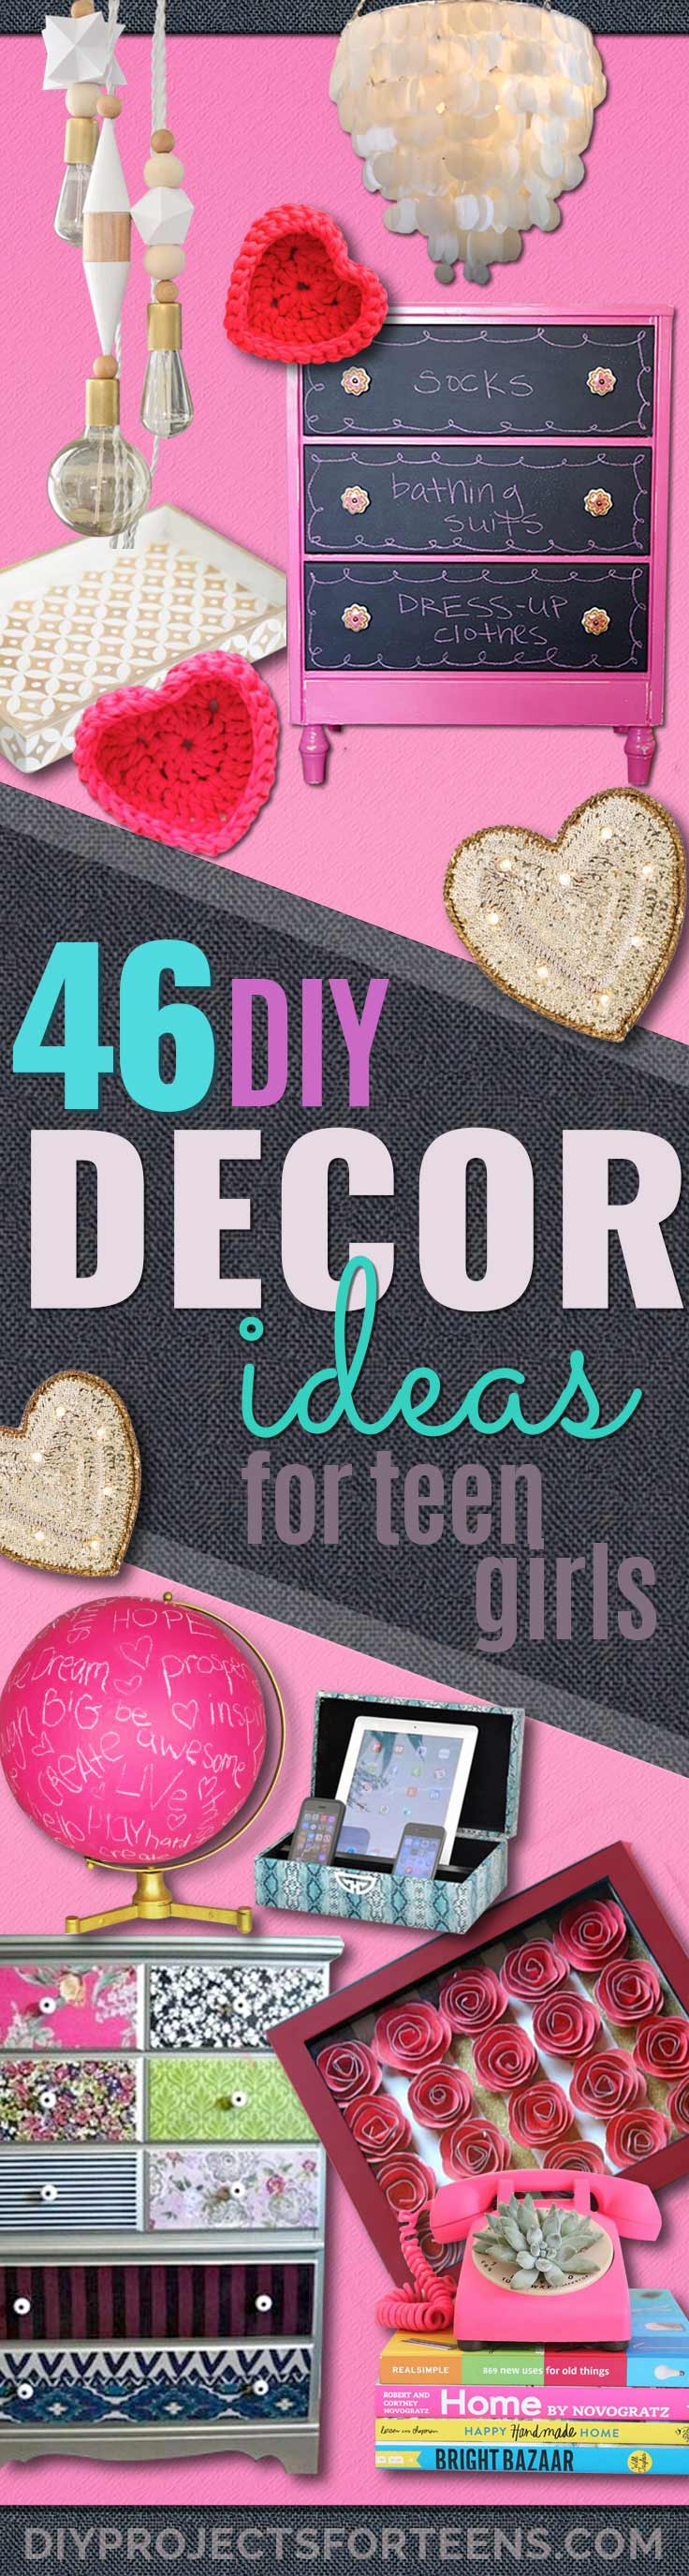 diy teen room decor ideas for girls fun crafts and decor for tweens cool - Cute Teen Room Decor